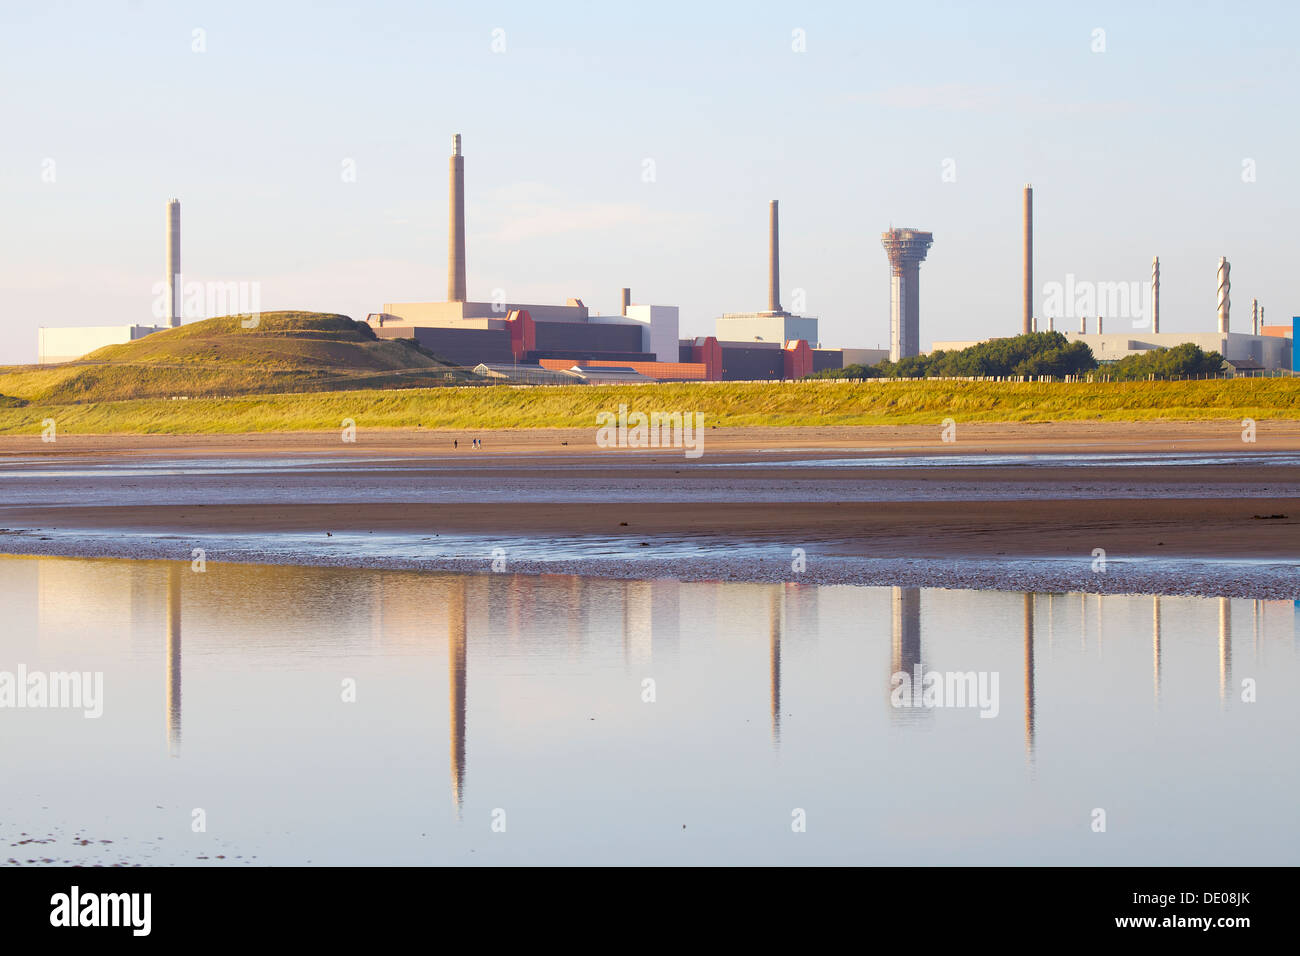 Sellafield nuclear power station reflected in a pool on the sea shore in front Cumbria England United Kingdom Great Britain - Stock Image